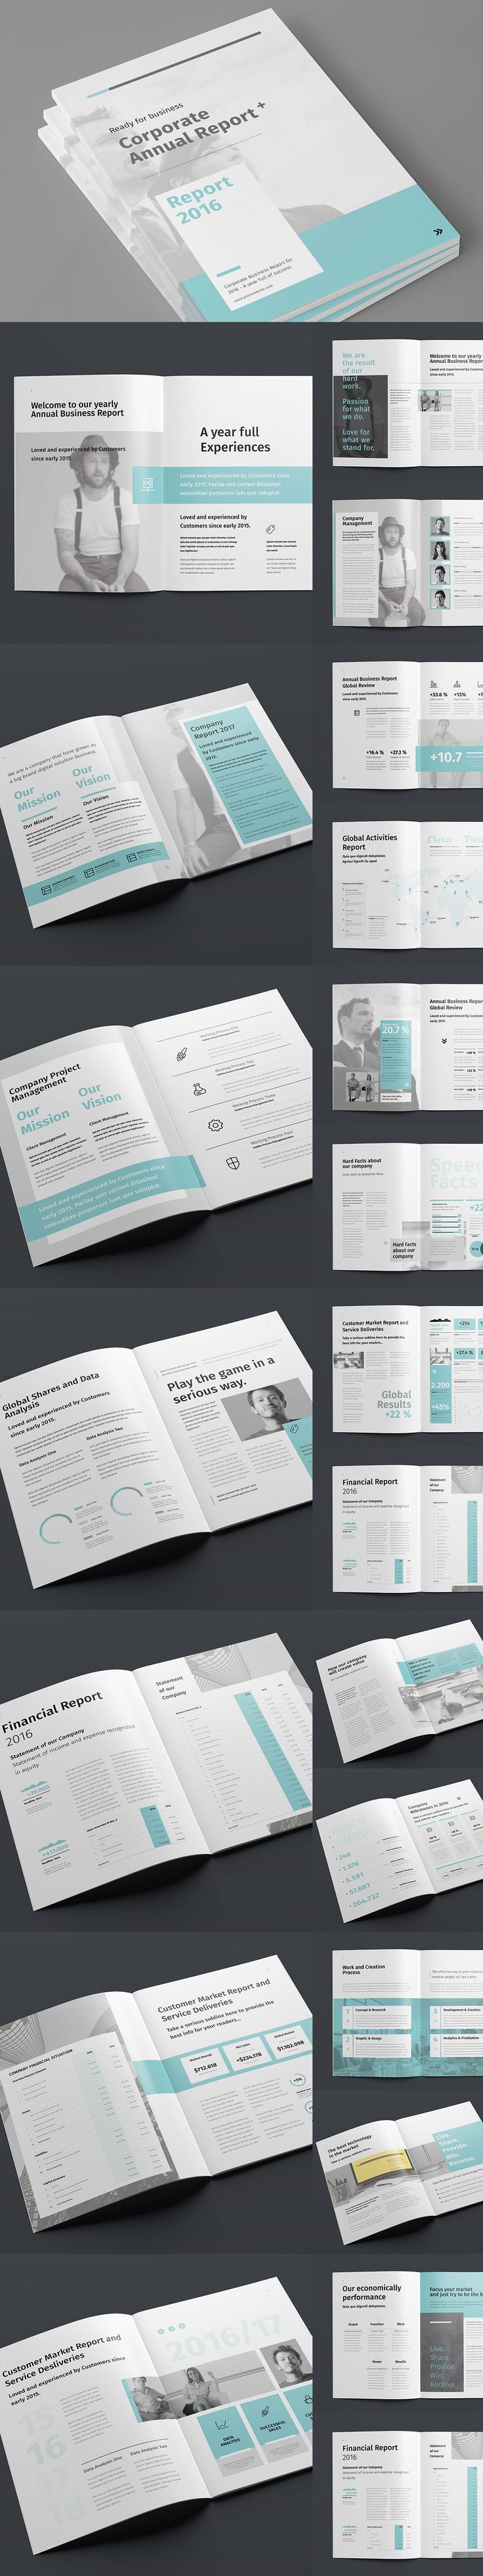 508 best Annual Report Designs images on Pinterest